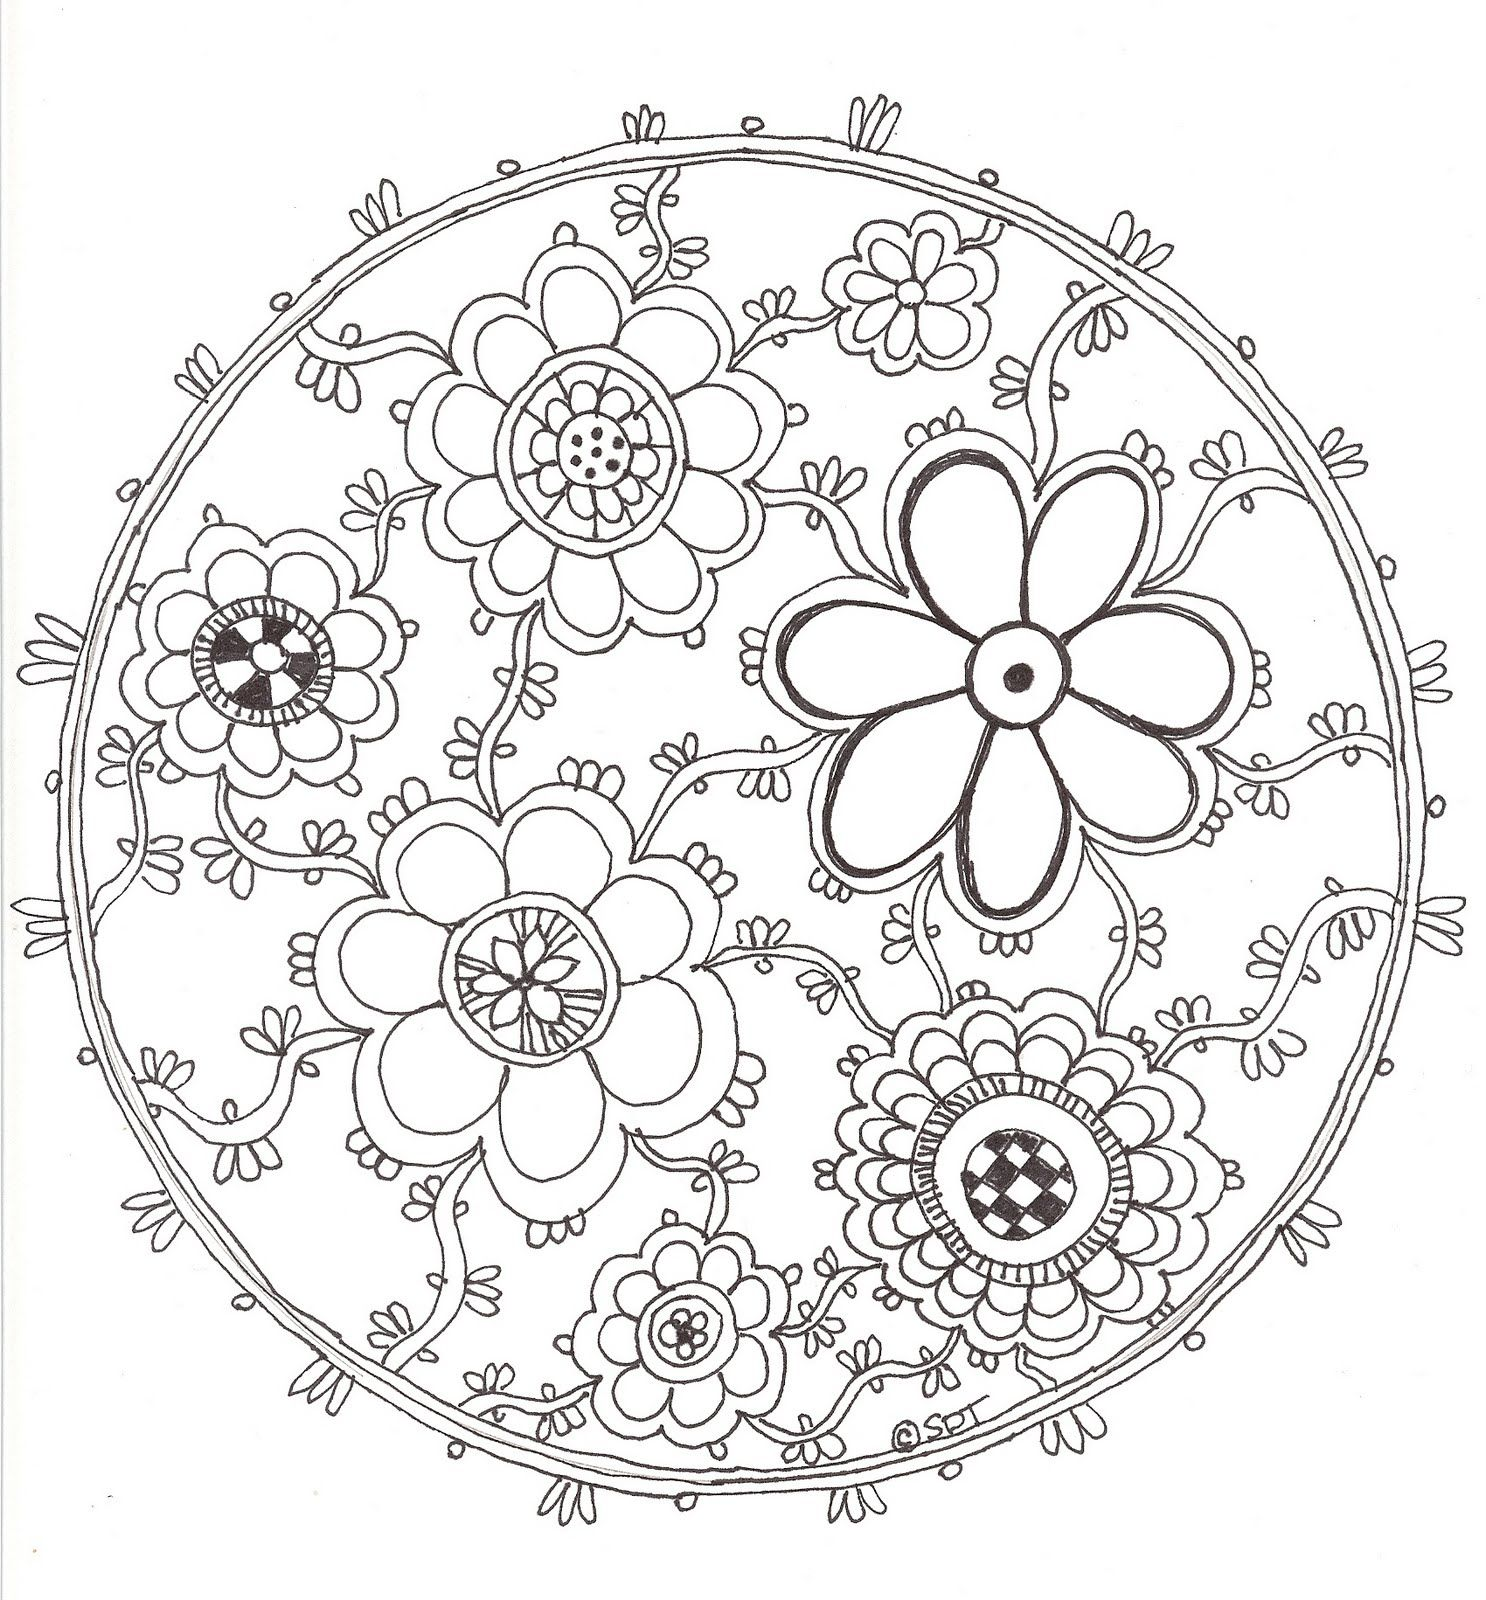 Mandala Designs And Meanings - Google Search